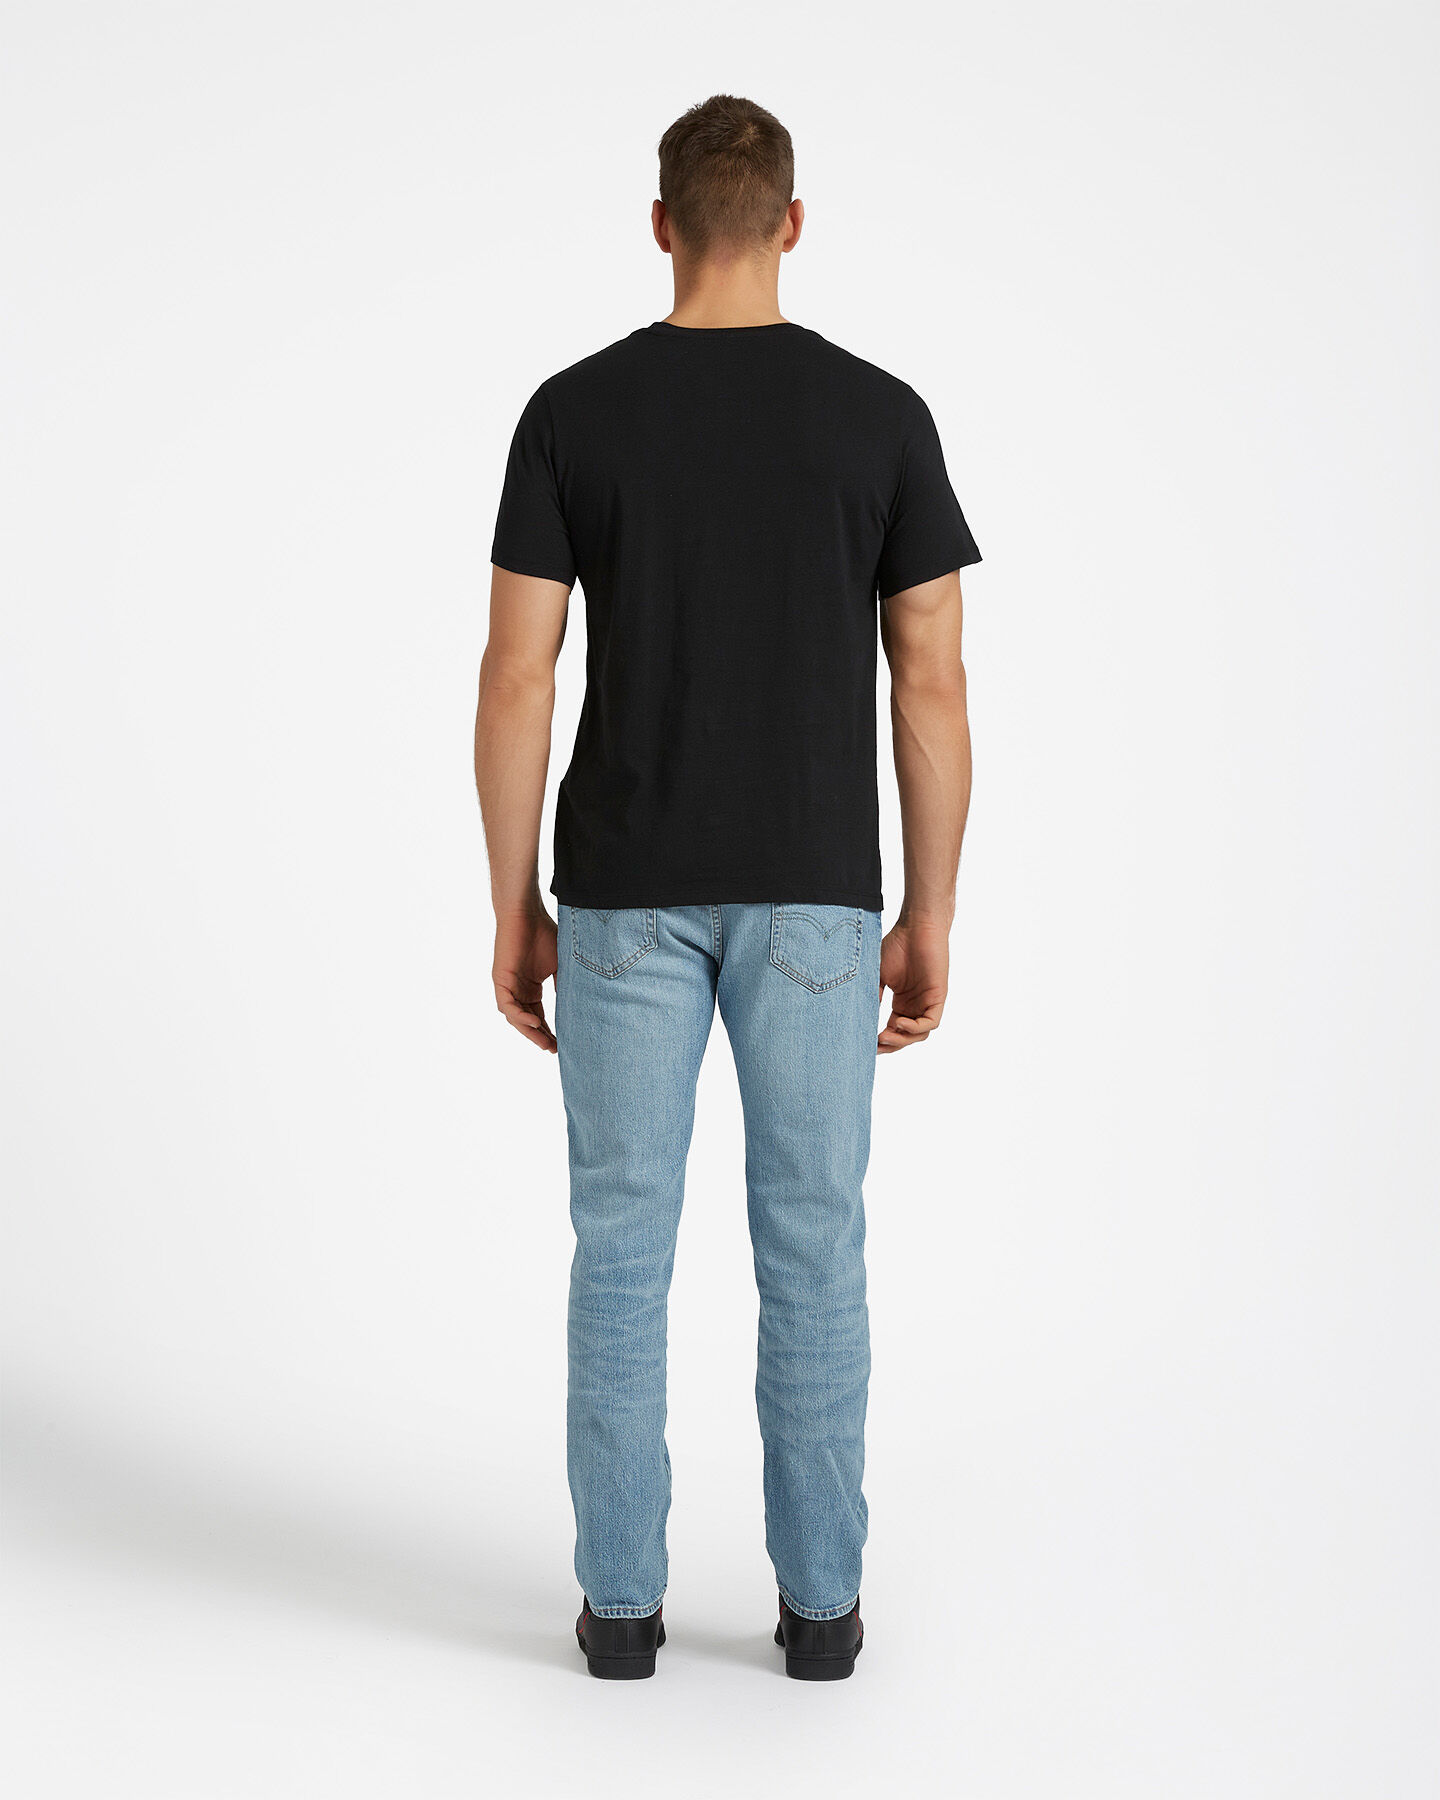 T-Shirt LEVI'S BOXTAB GRAPHIC M S4076920 scatto 2